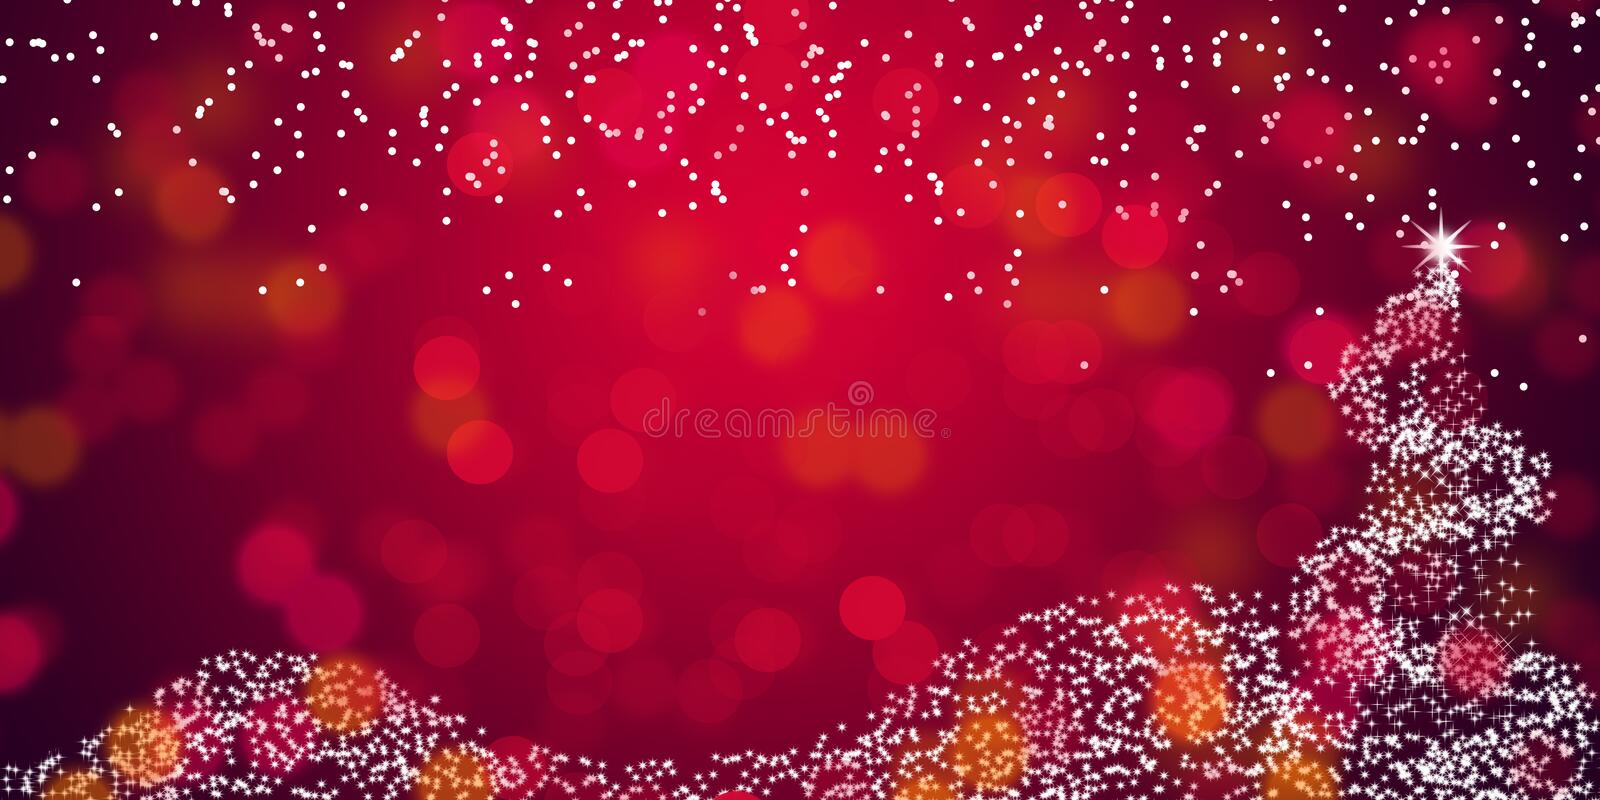 Christmas Tree with de-focused lights Red Abstract background wallpaper royalty free stock photos